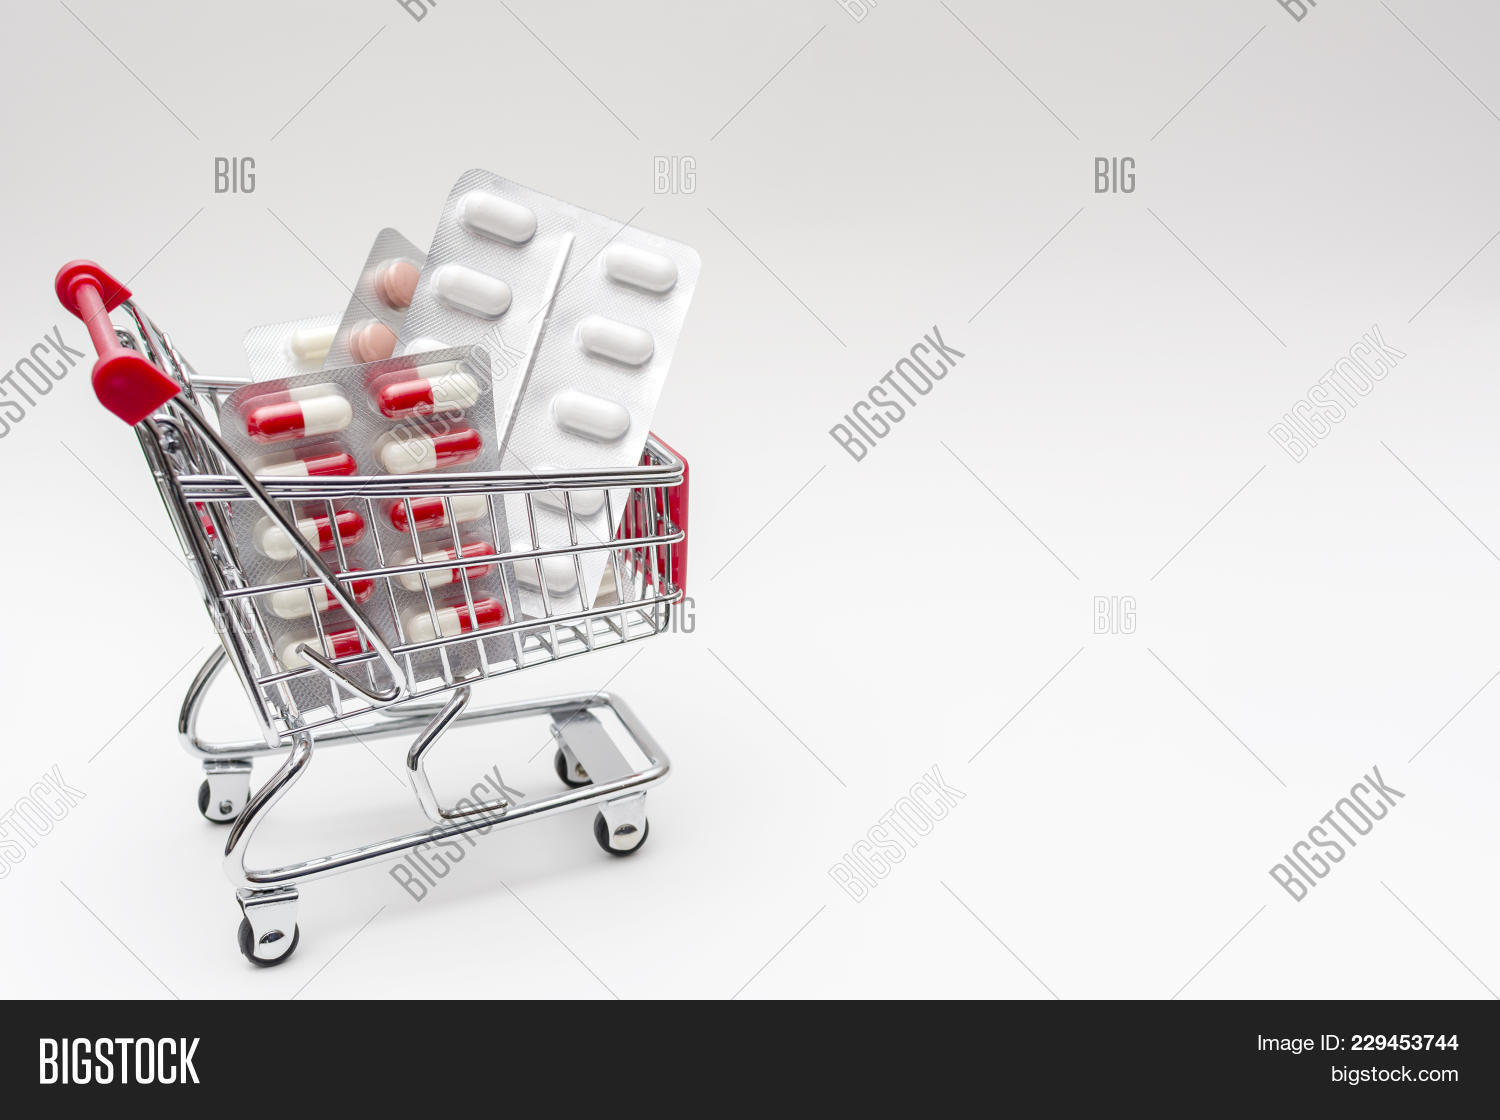 Buying A Drugs From Pharmacy Powerpoint Template Buying A Drugs